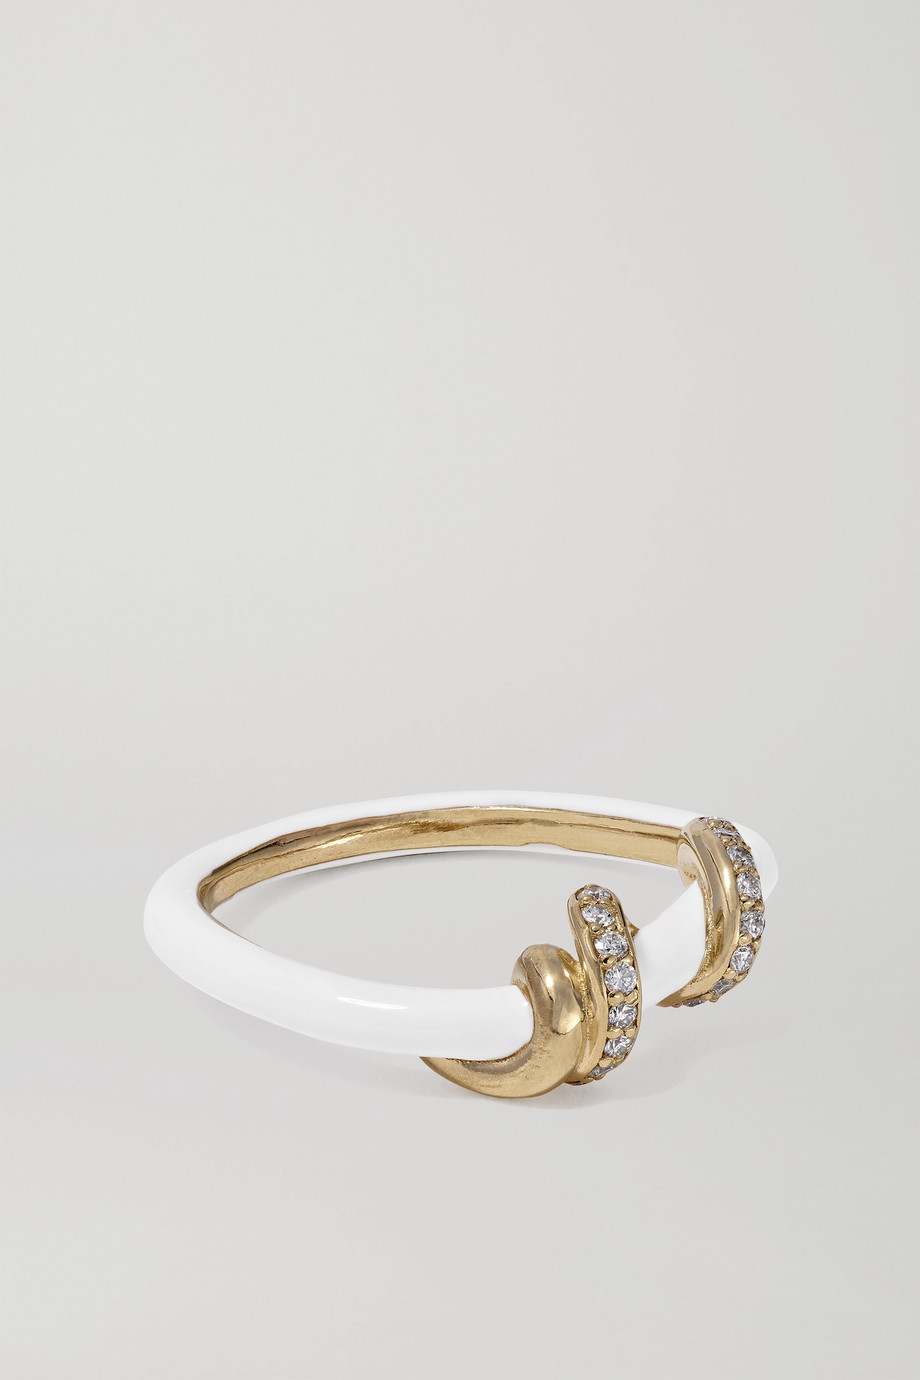 Bea Bongiasca Baby Vine 9-karat gold, enamel and diamond ring